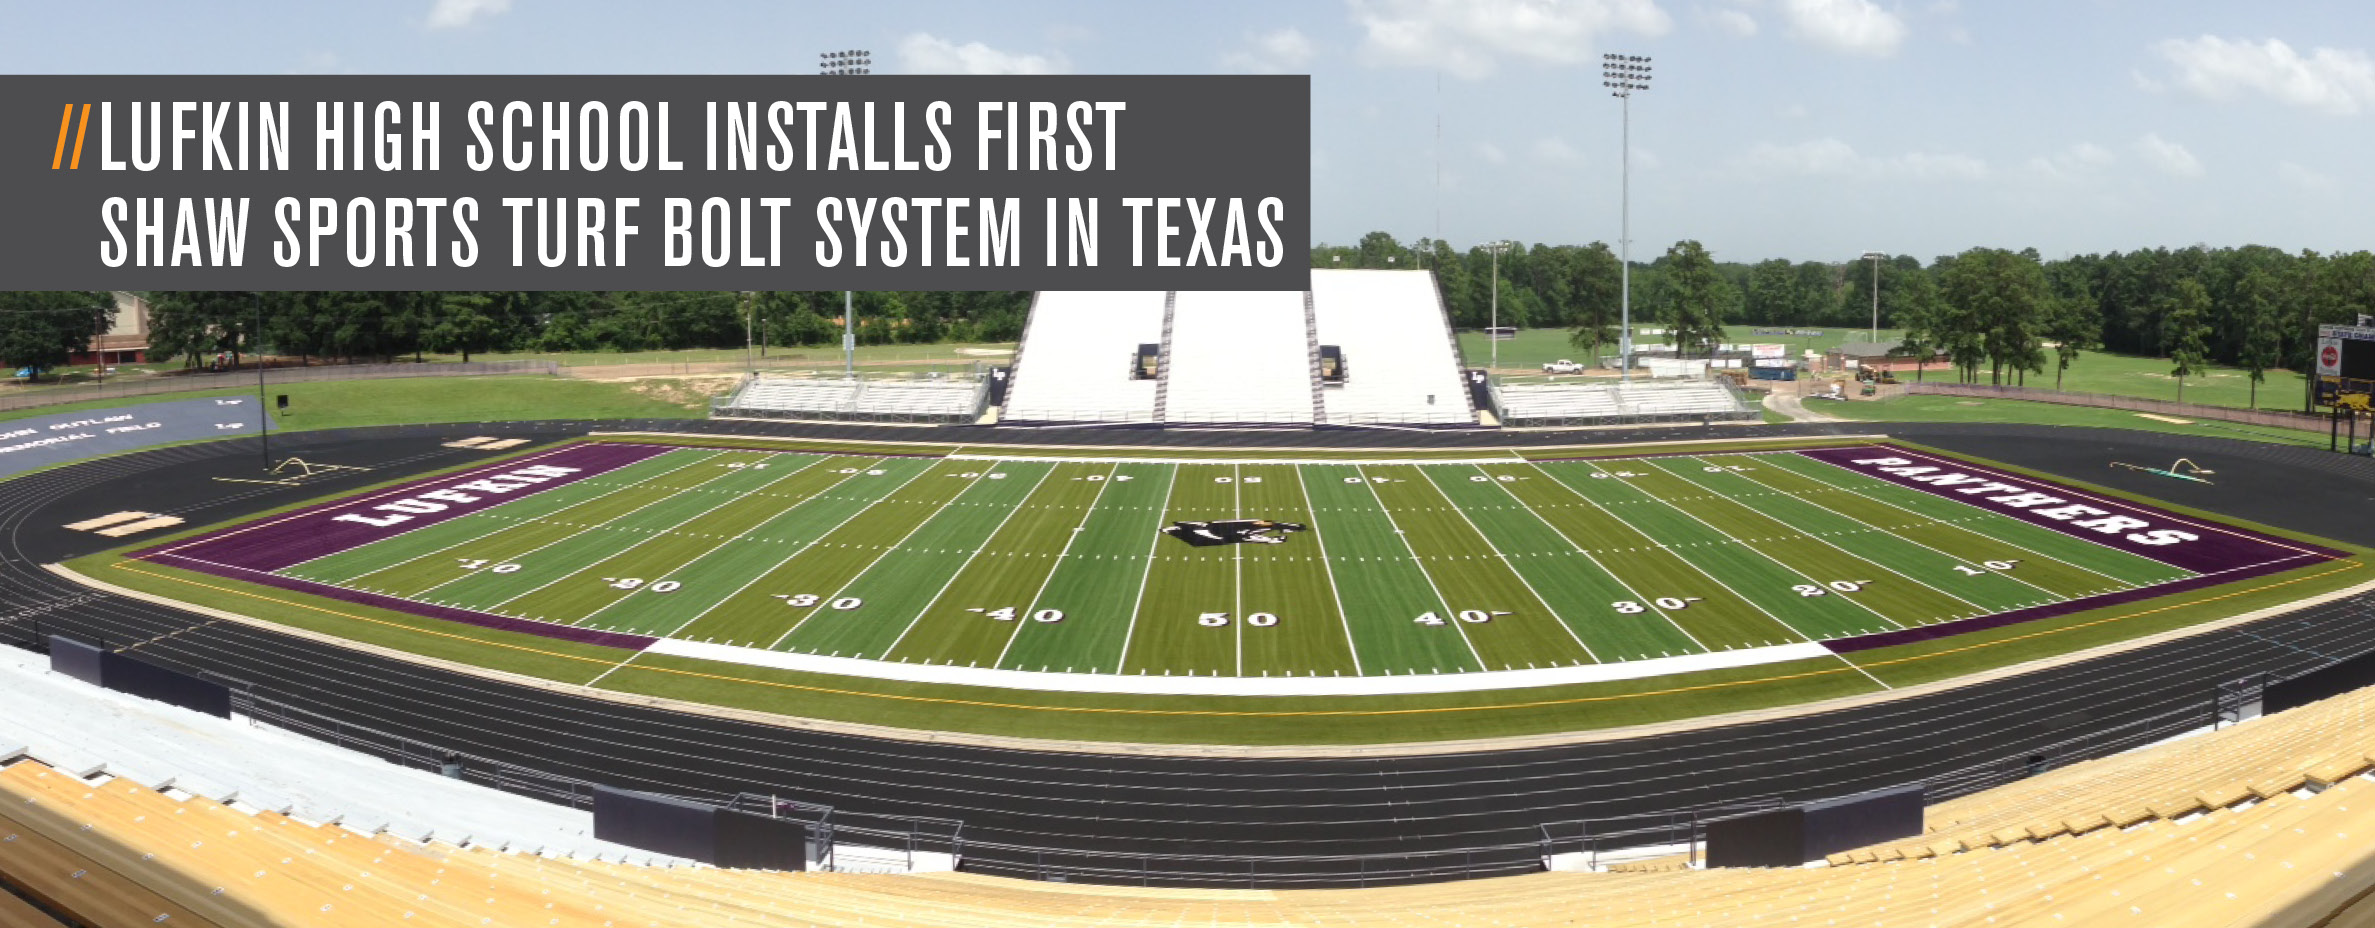 LUFKIN HIGH SCHOOL INSTALLS FIRST SHAW SPORTS TURF BOLT SYSTEM IN TEXAS Image